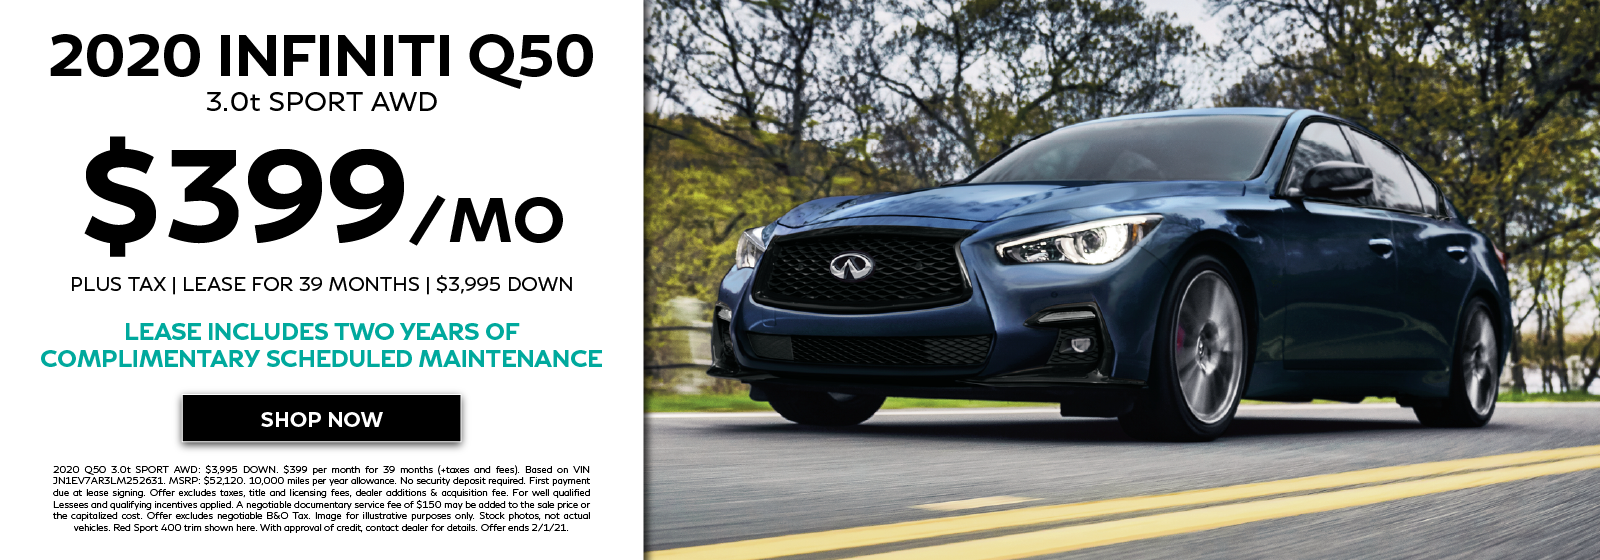 Well-qualified lessees can lease a new 2020 INFINITI Q50 3.0t SPORT AWD for $399 per month for 39 months plus get two years complimentary scheduled maintenance. Click to view inventory.